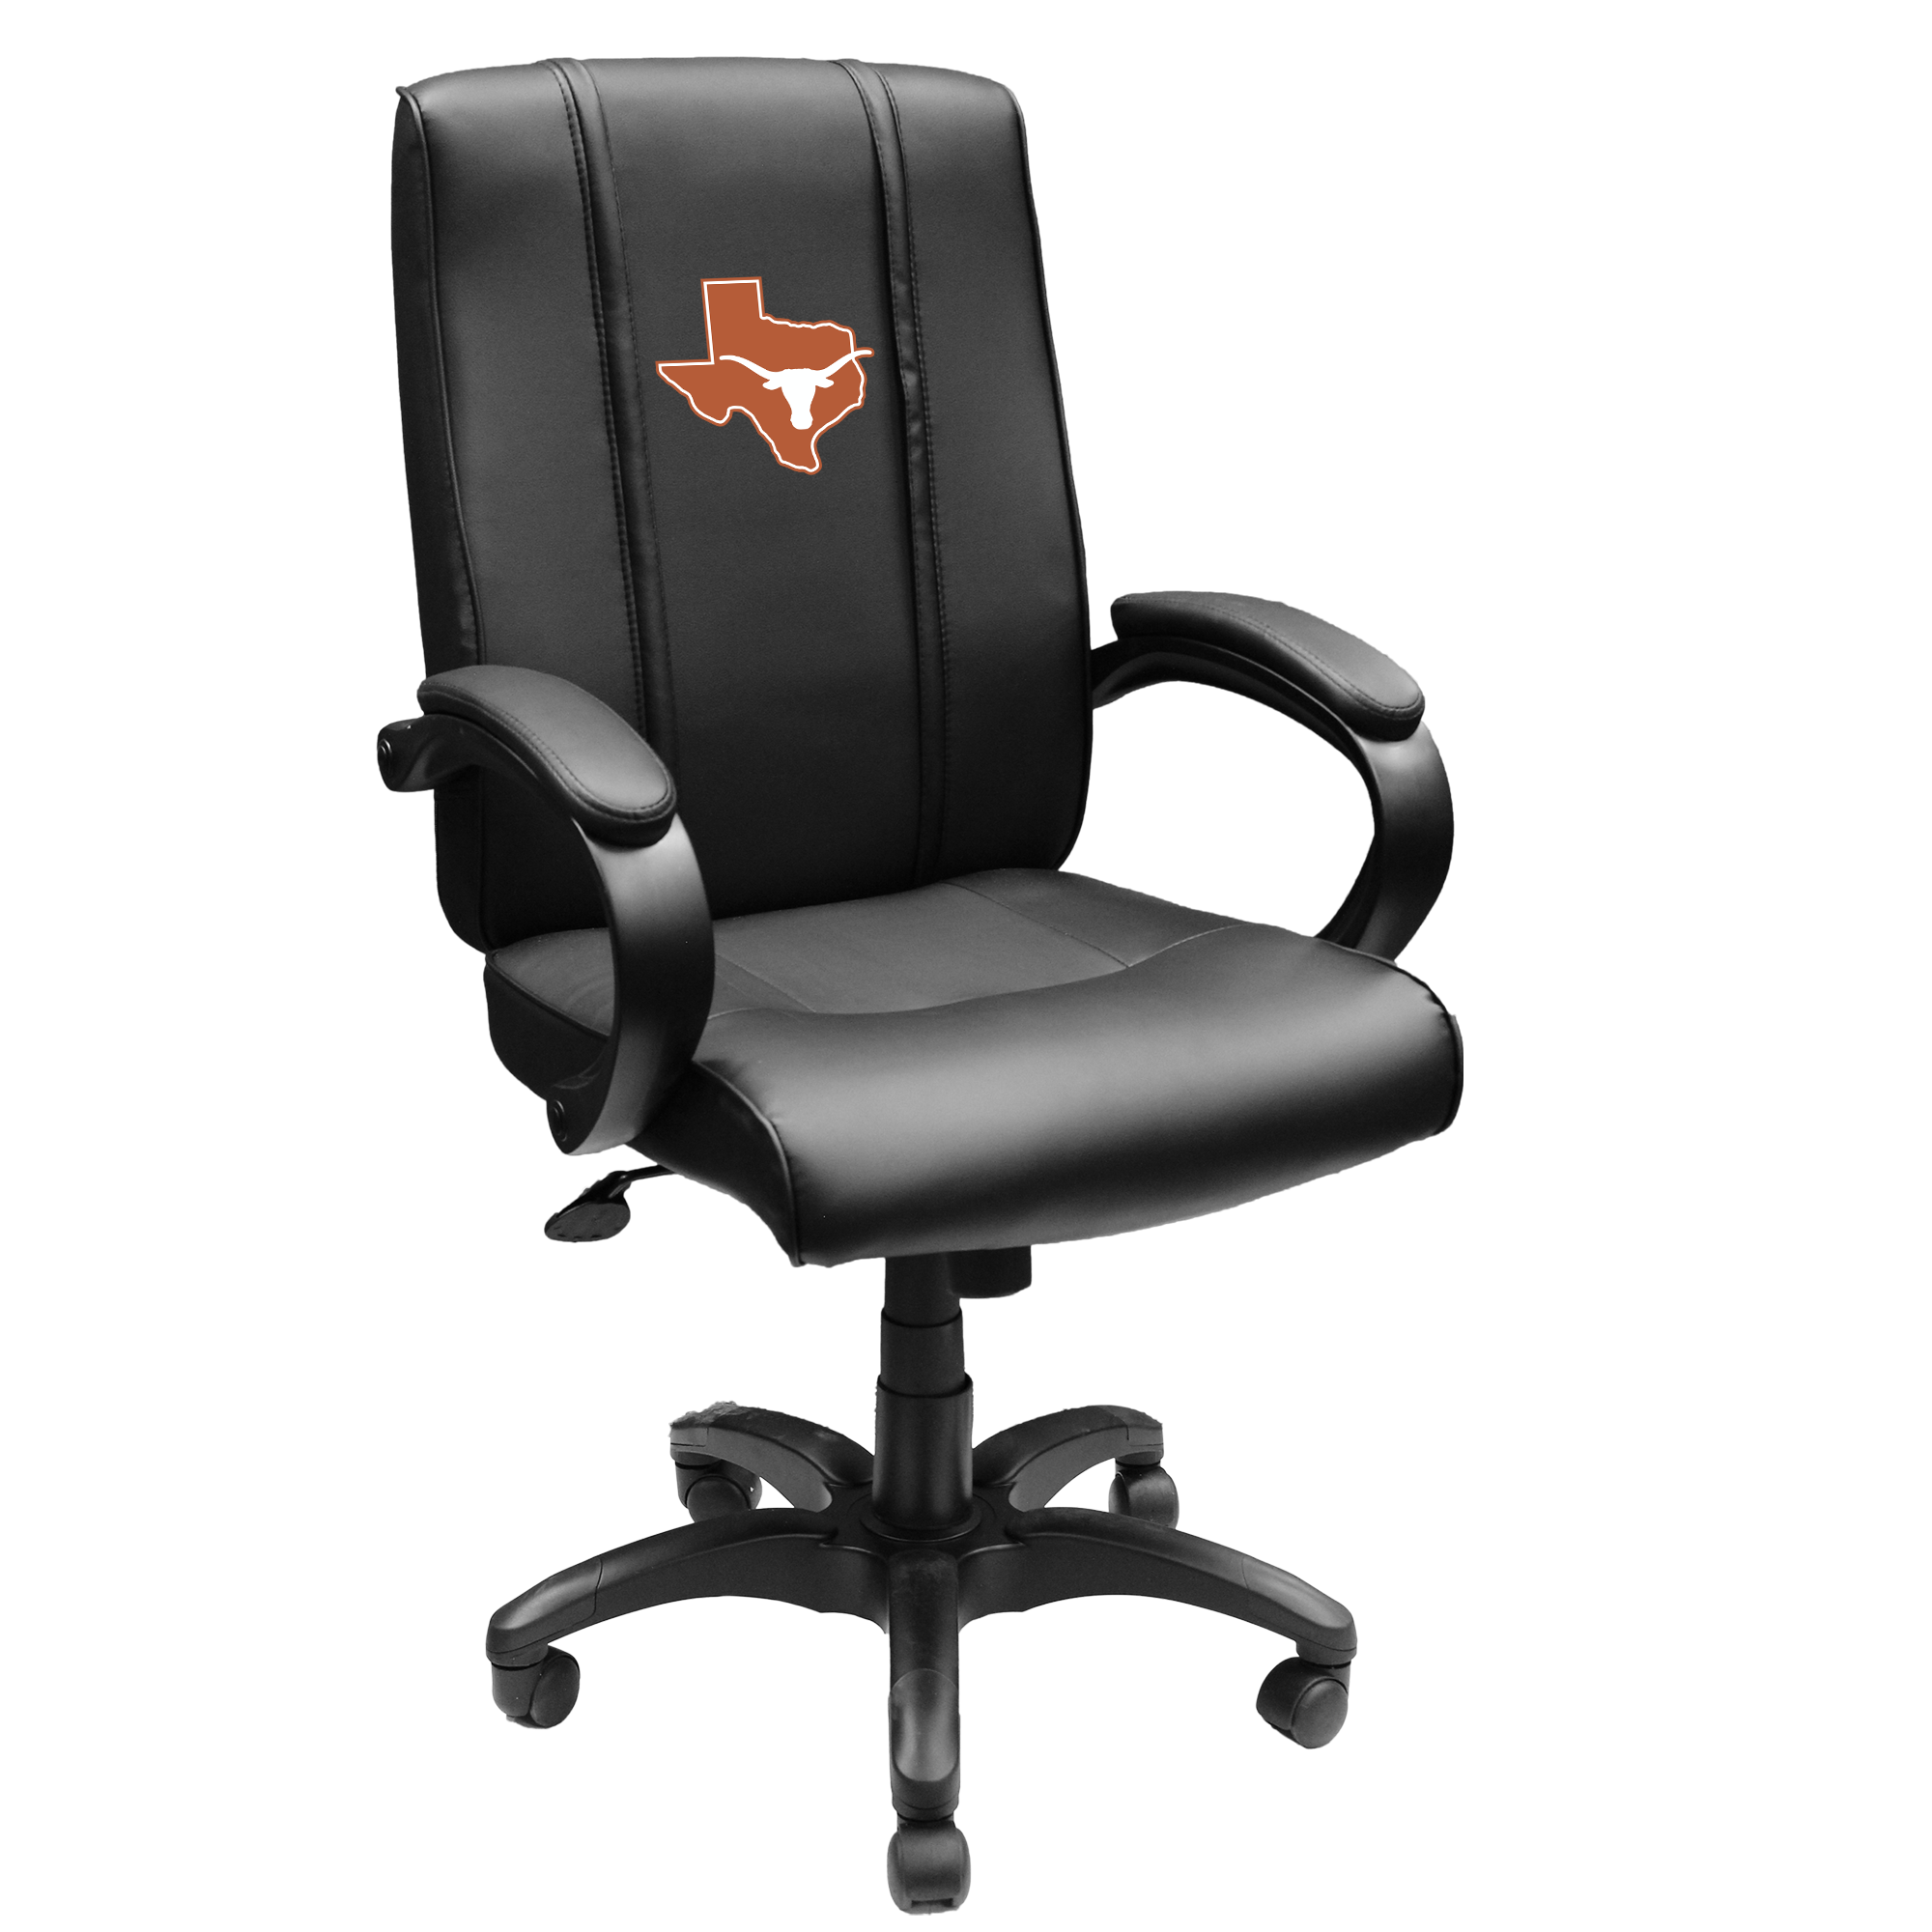 Office Chair 1000 with Texas Longhorns Secondary